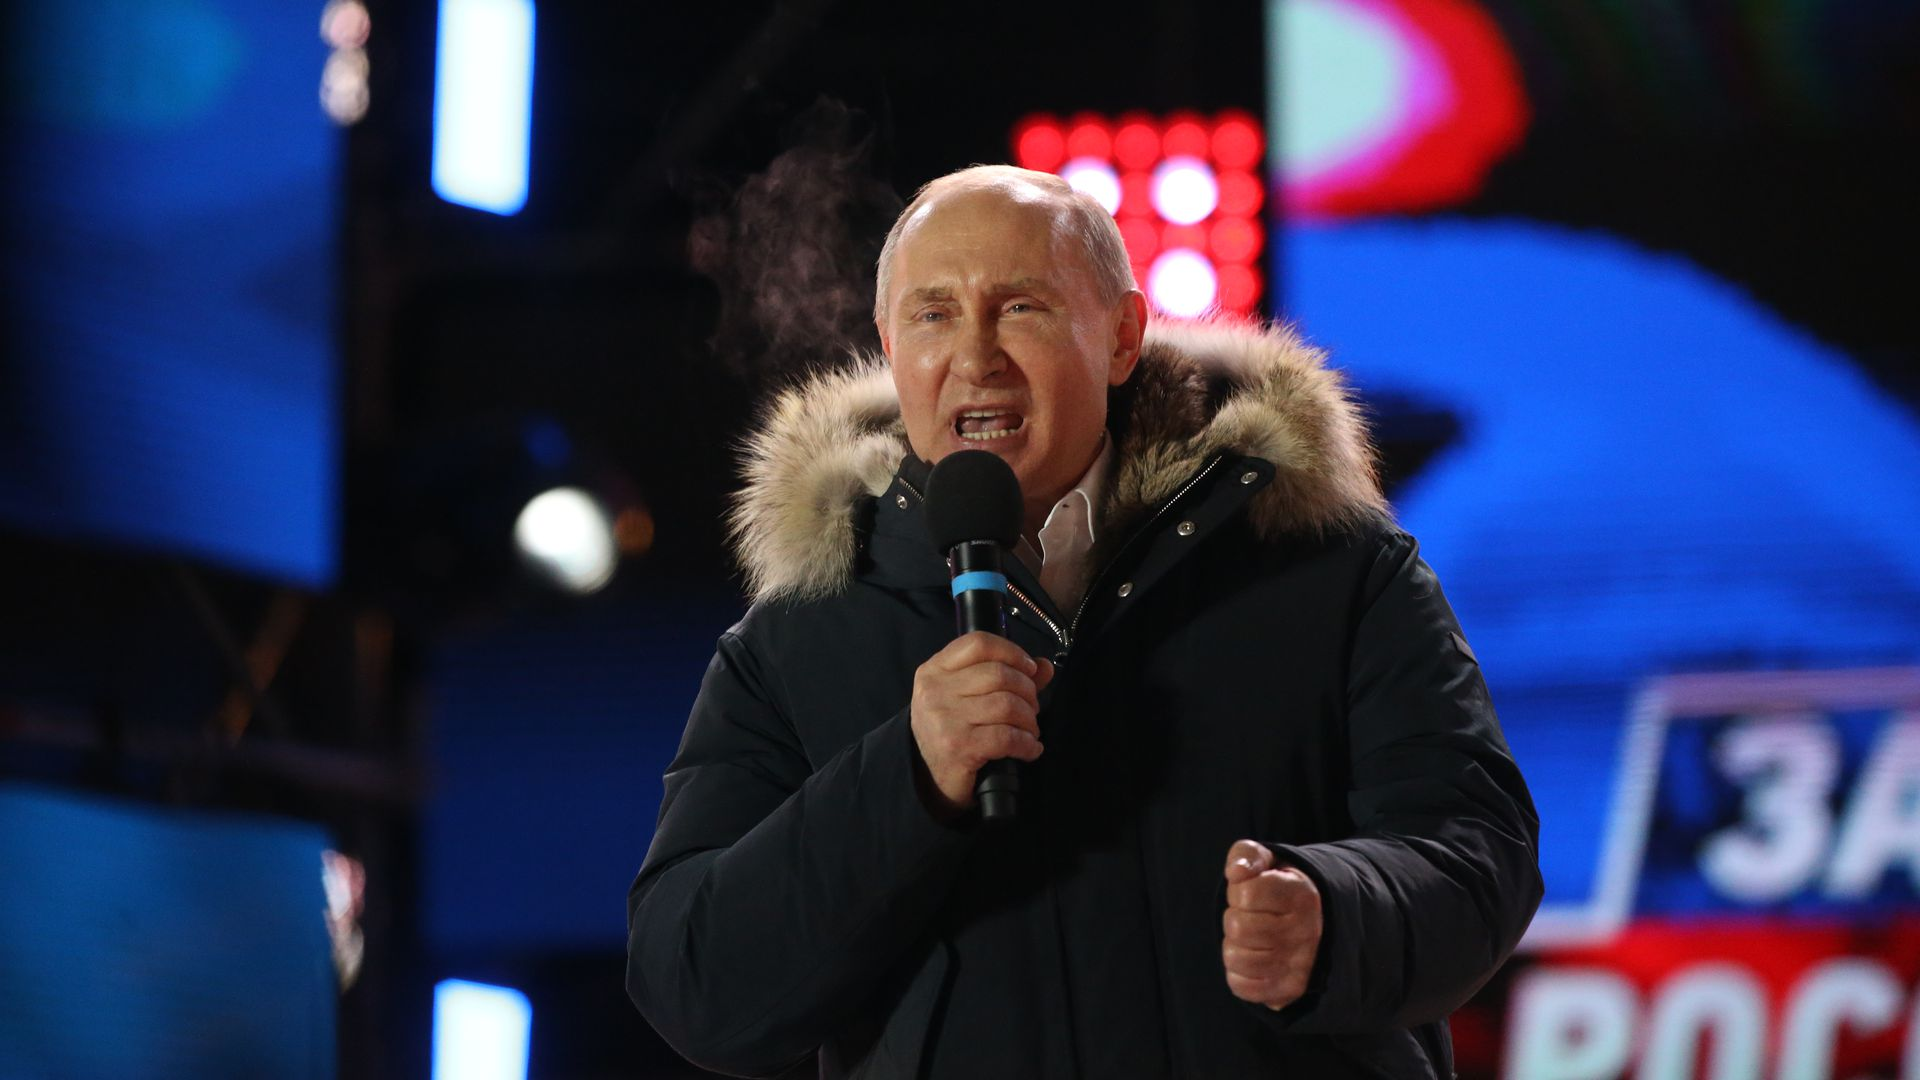 Russian President Vladimir Putin at a campaign rally in March before winning reelection